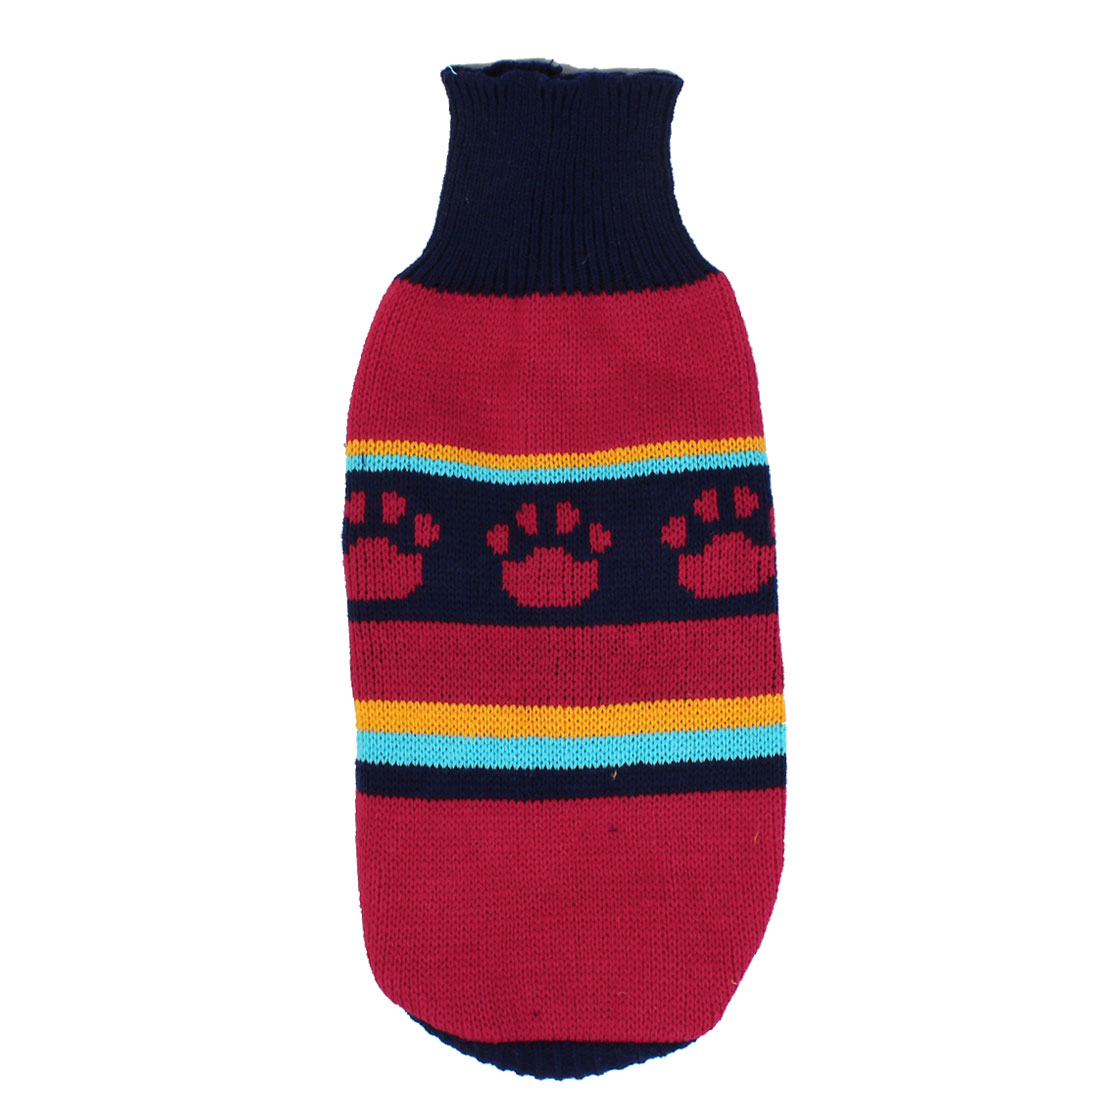 Pet Dog Puppy Claw Print Ribbed Cuff Knitwear Turtleneck Apparel Sweater Dark Blue Red Size XXS